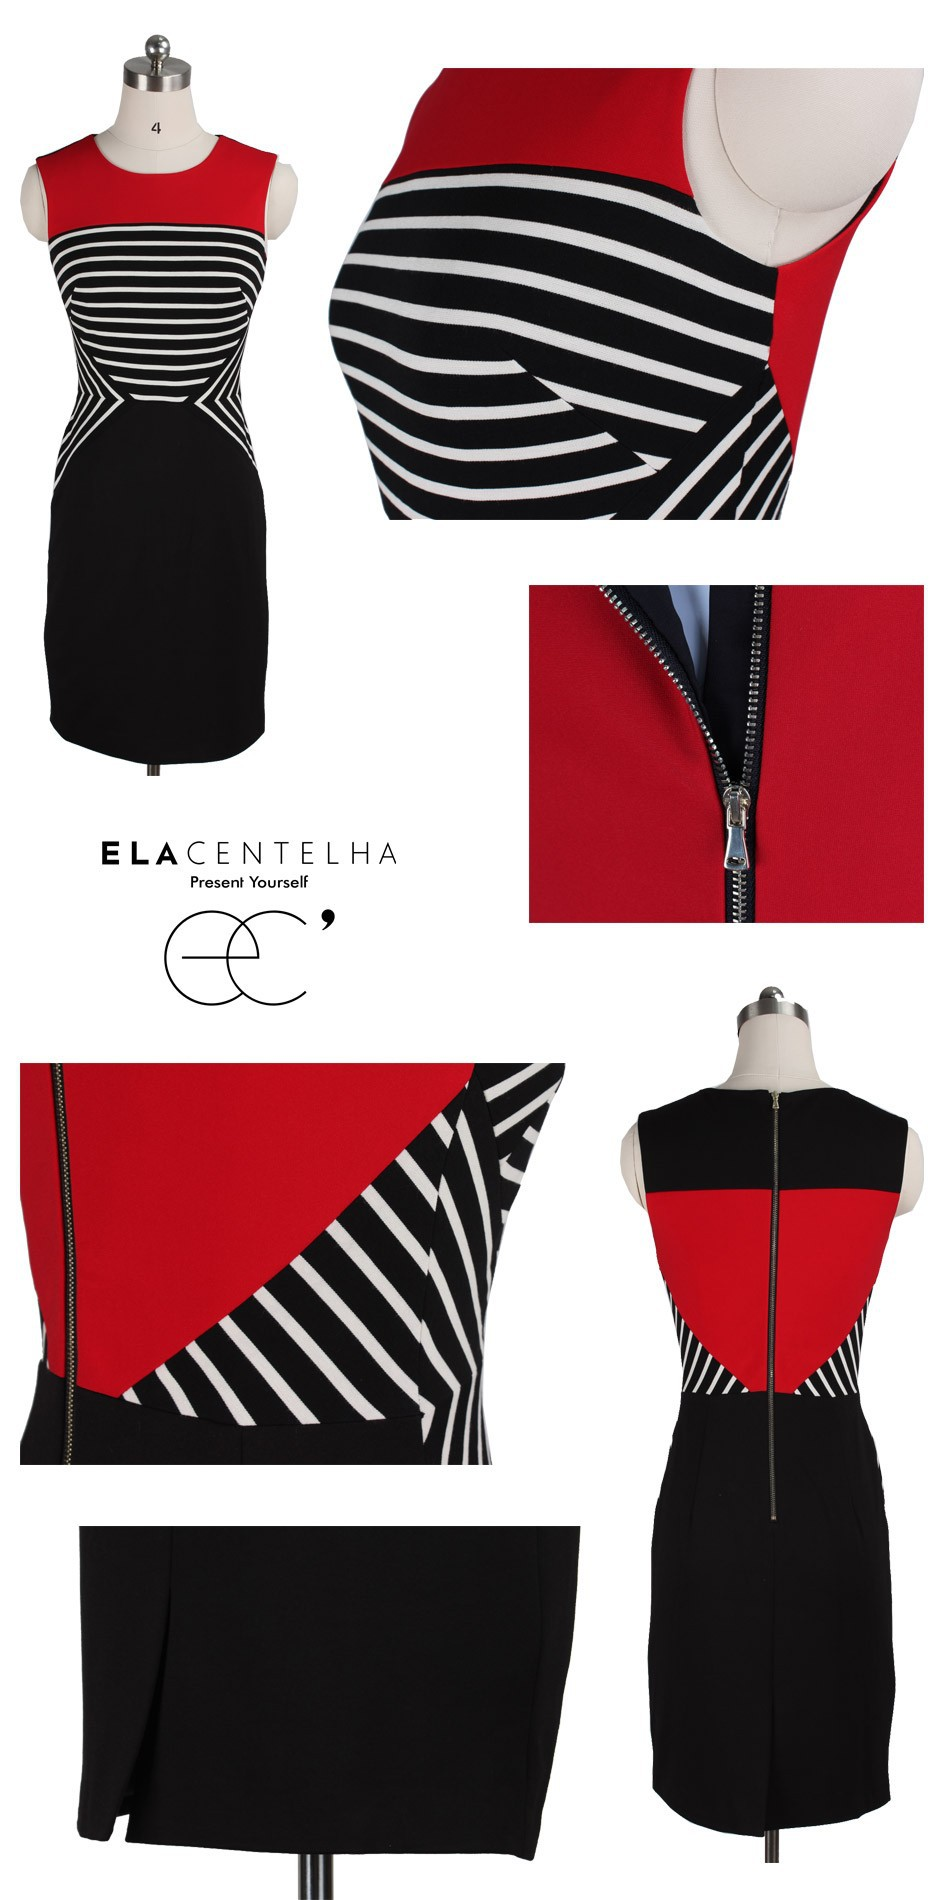 97db5d5f3accf Wholesale- ElaCentelha Neoclassicism Summer Women Casual Dress Striped  Color Block Patchwork Autumn A-line Fitted Day Dresses